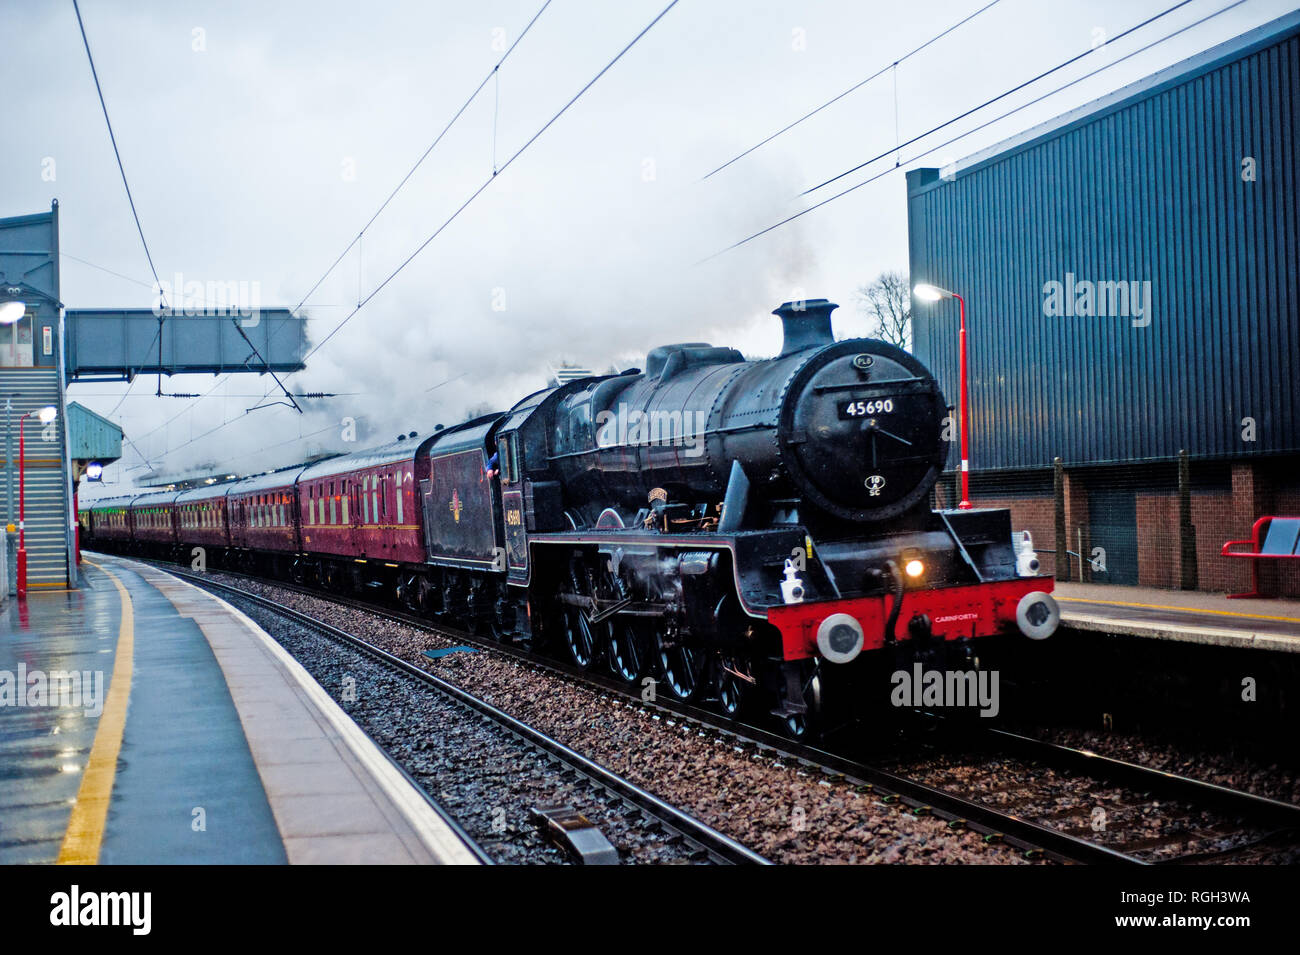 Jubilee Class No 45690 Leander storms through Penrith Railway Station, Cumbroa, England - Stock Image